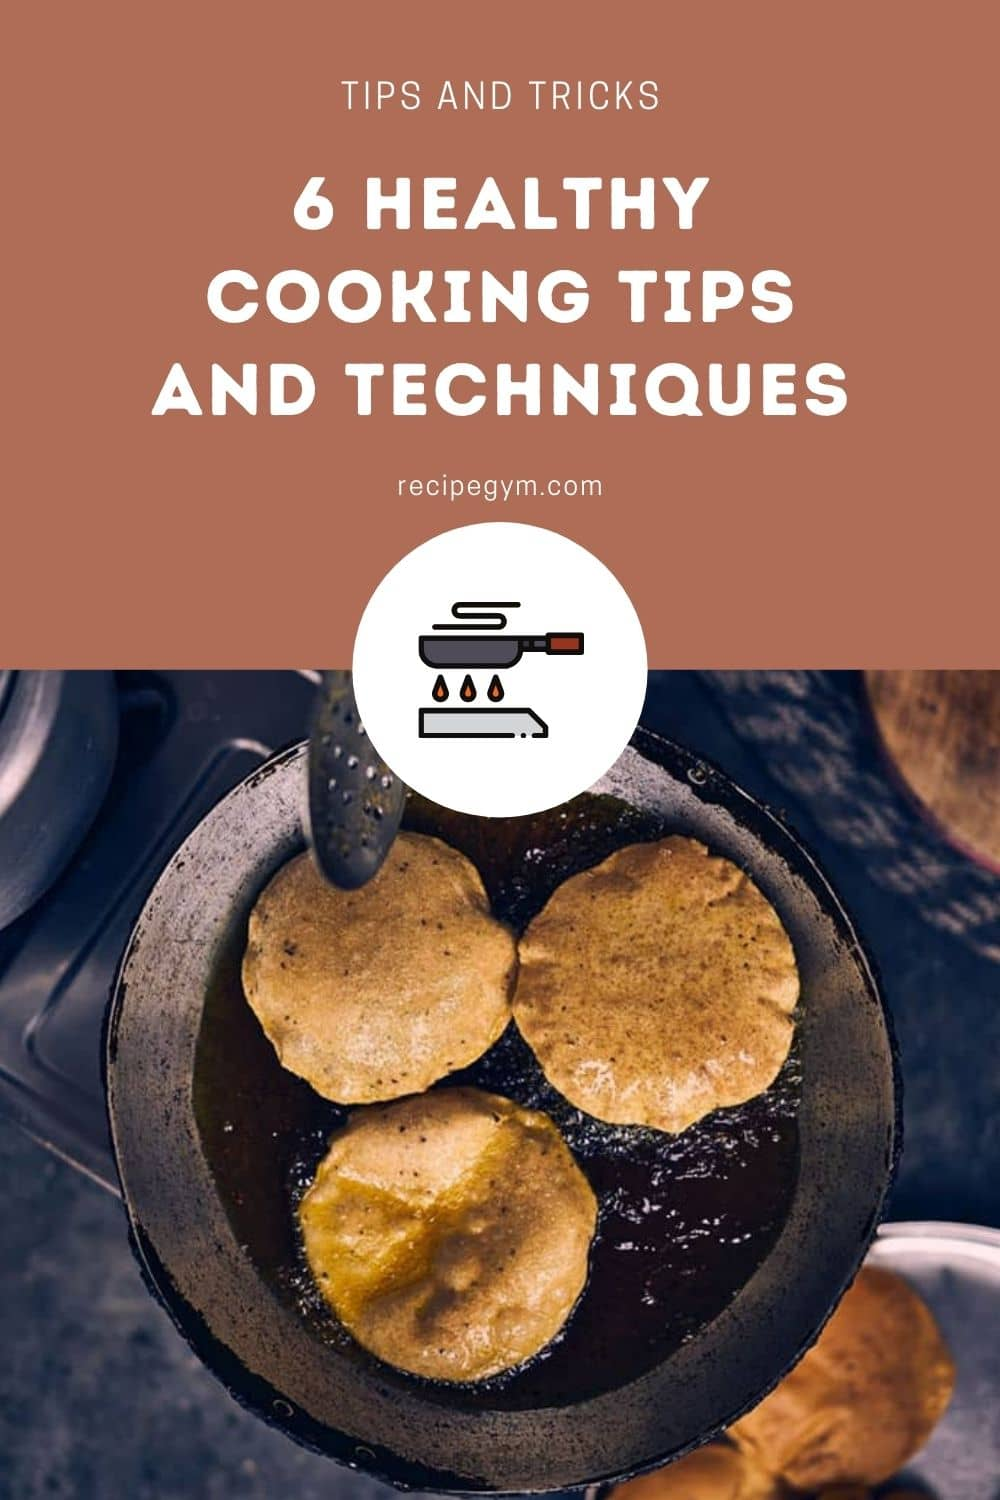 Healthy cooking tips and techniques